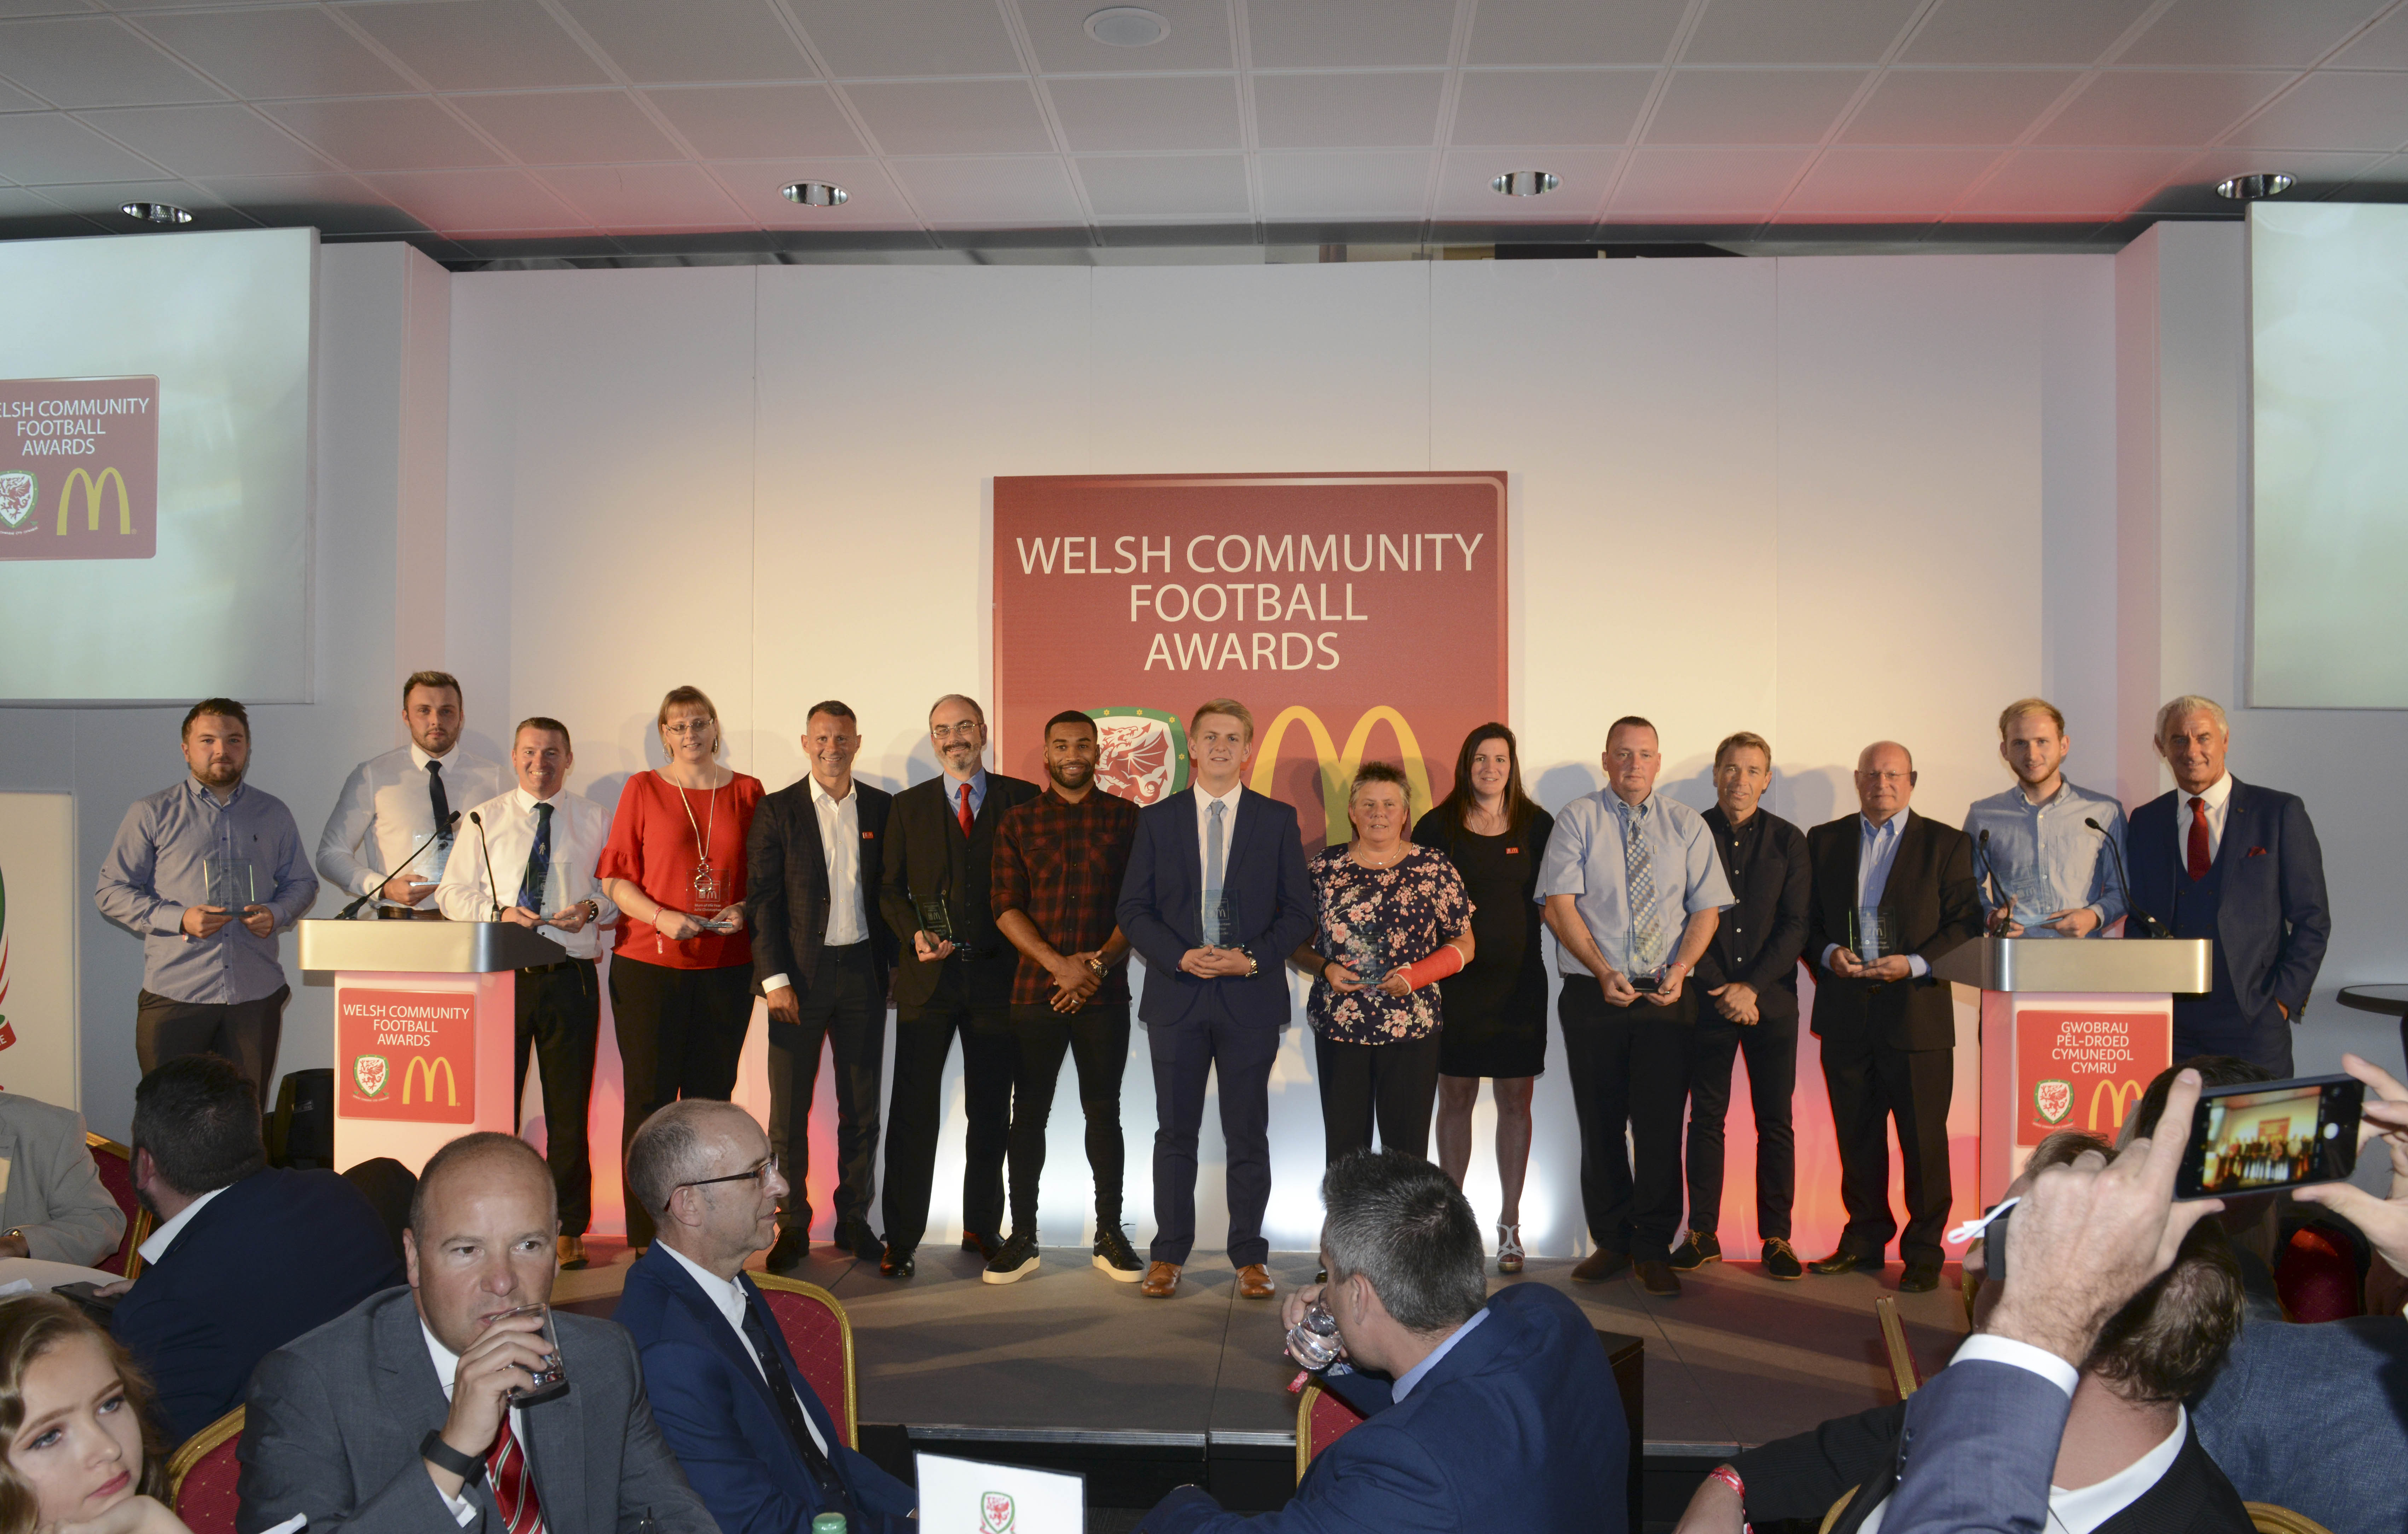 Ian Rush and Ryan Giggs celebrate grassroots football at McDonald's awards ceremony